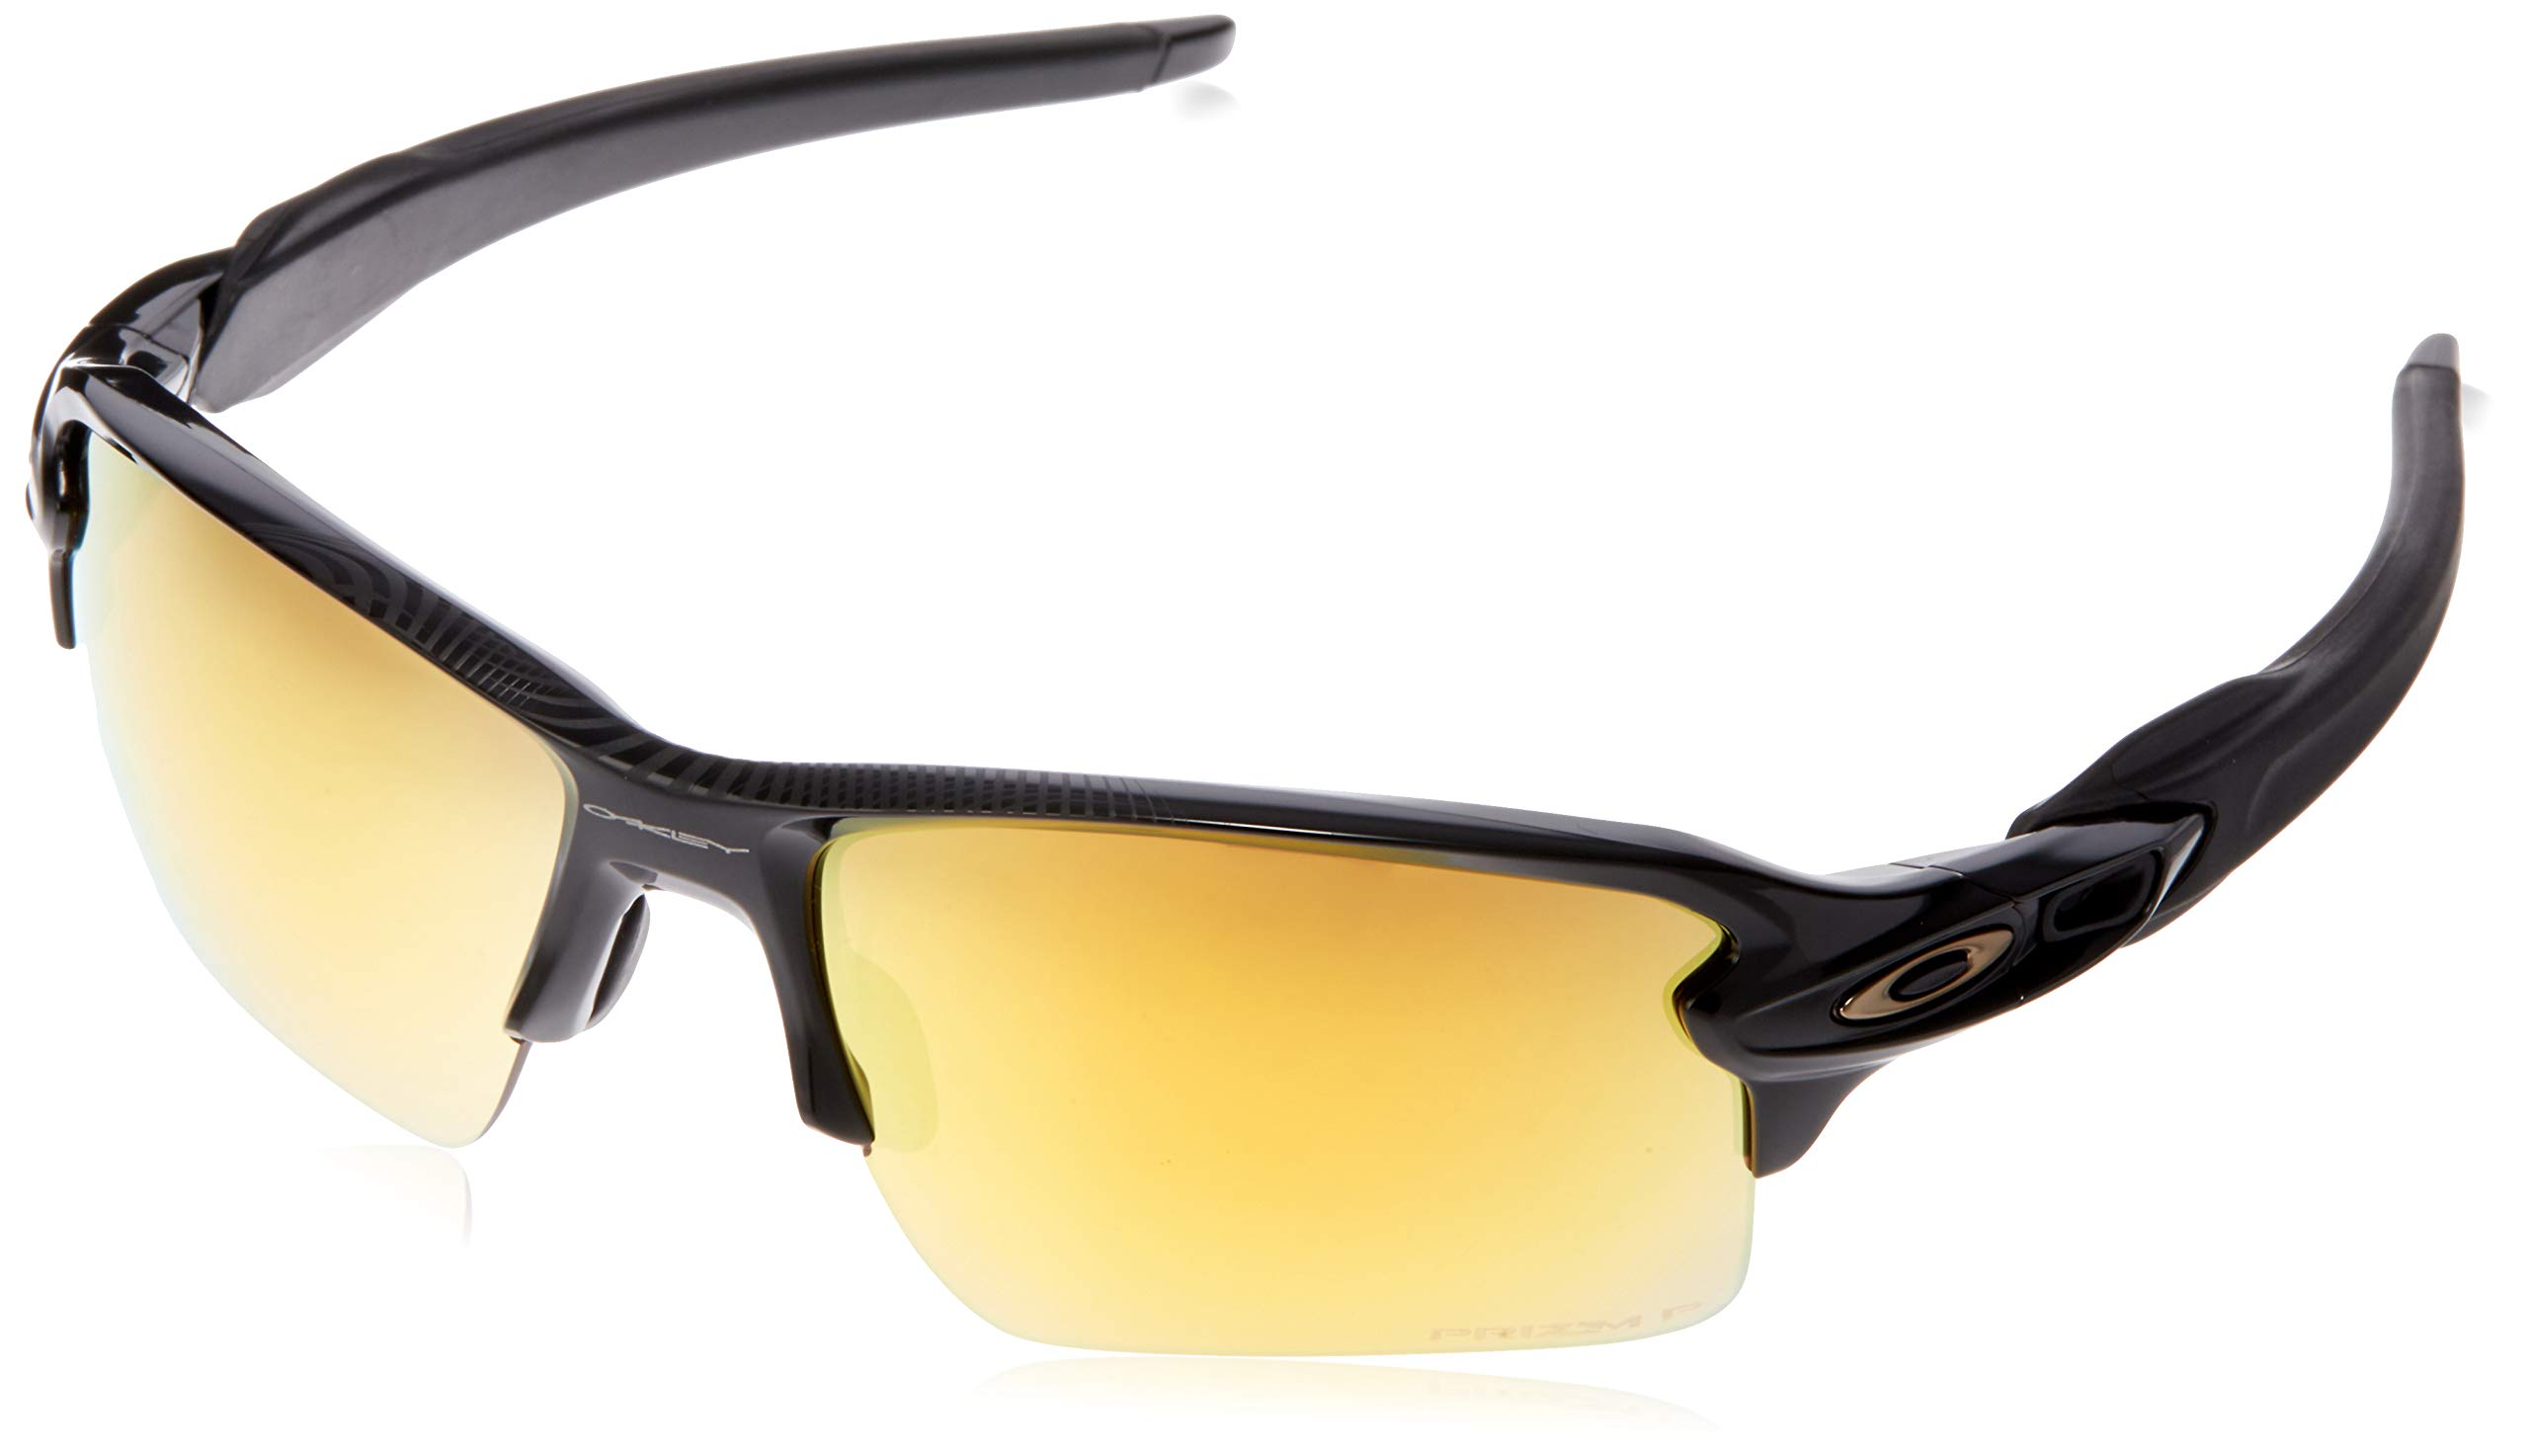 Oakley Men's OO9188 Flak 2.0 XL Rectangular Sunglasses, Polished Black/Prizm 24K Polarized, 59 mm by Oakley